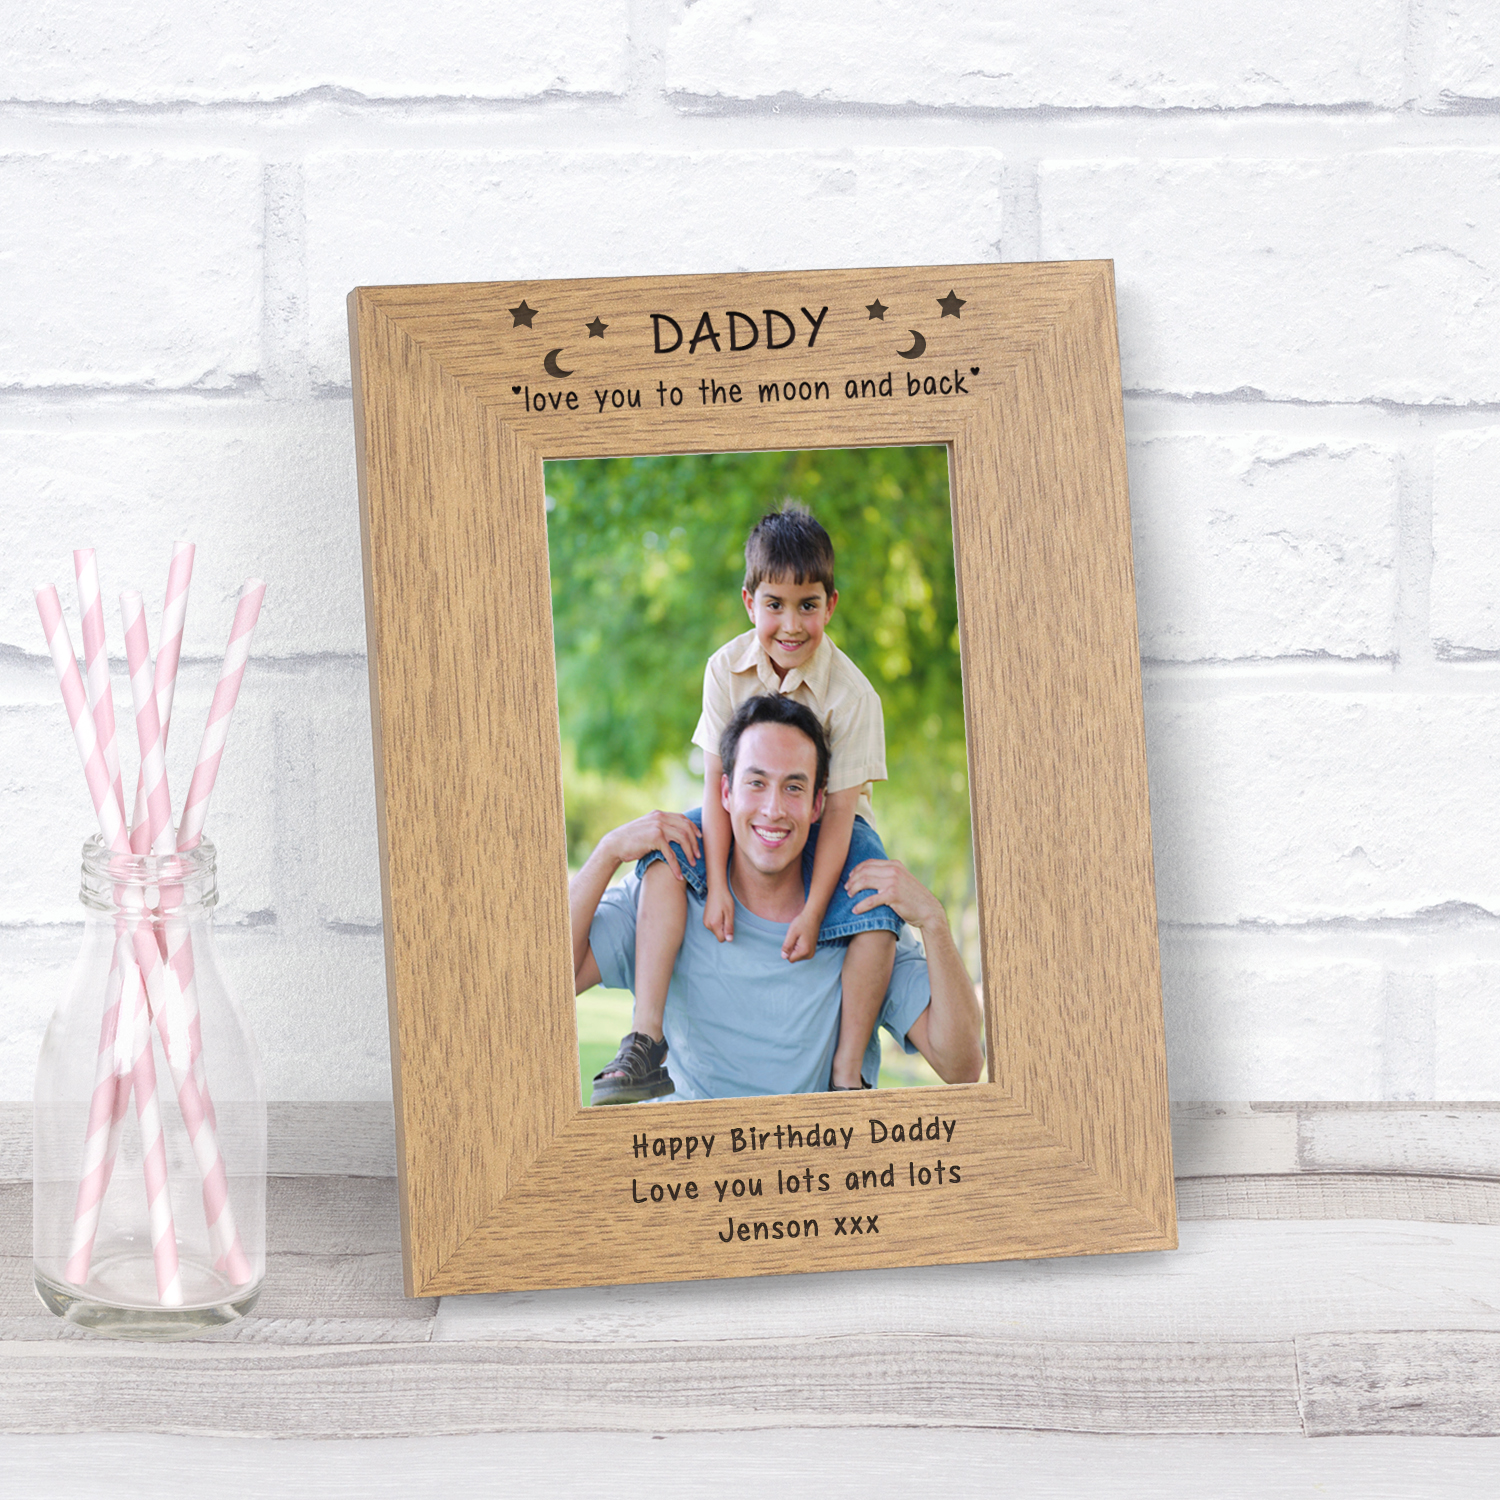 Daddy love you to the moon and back Wood Frame - 7x5